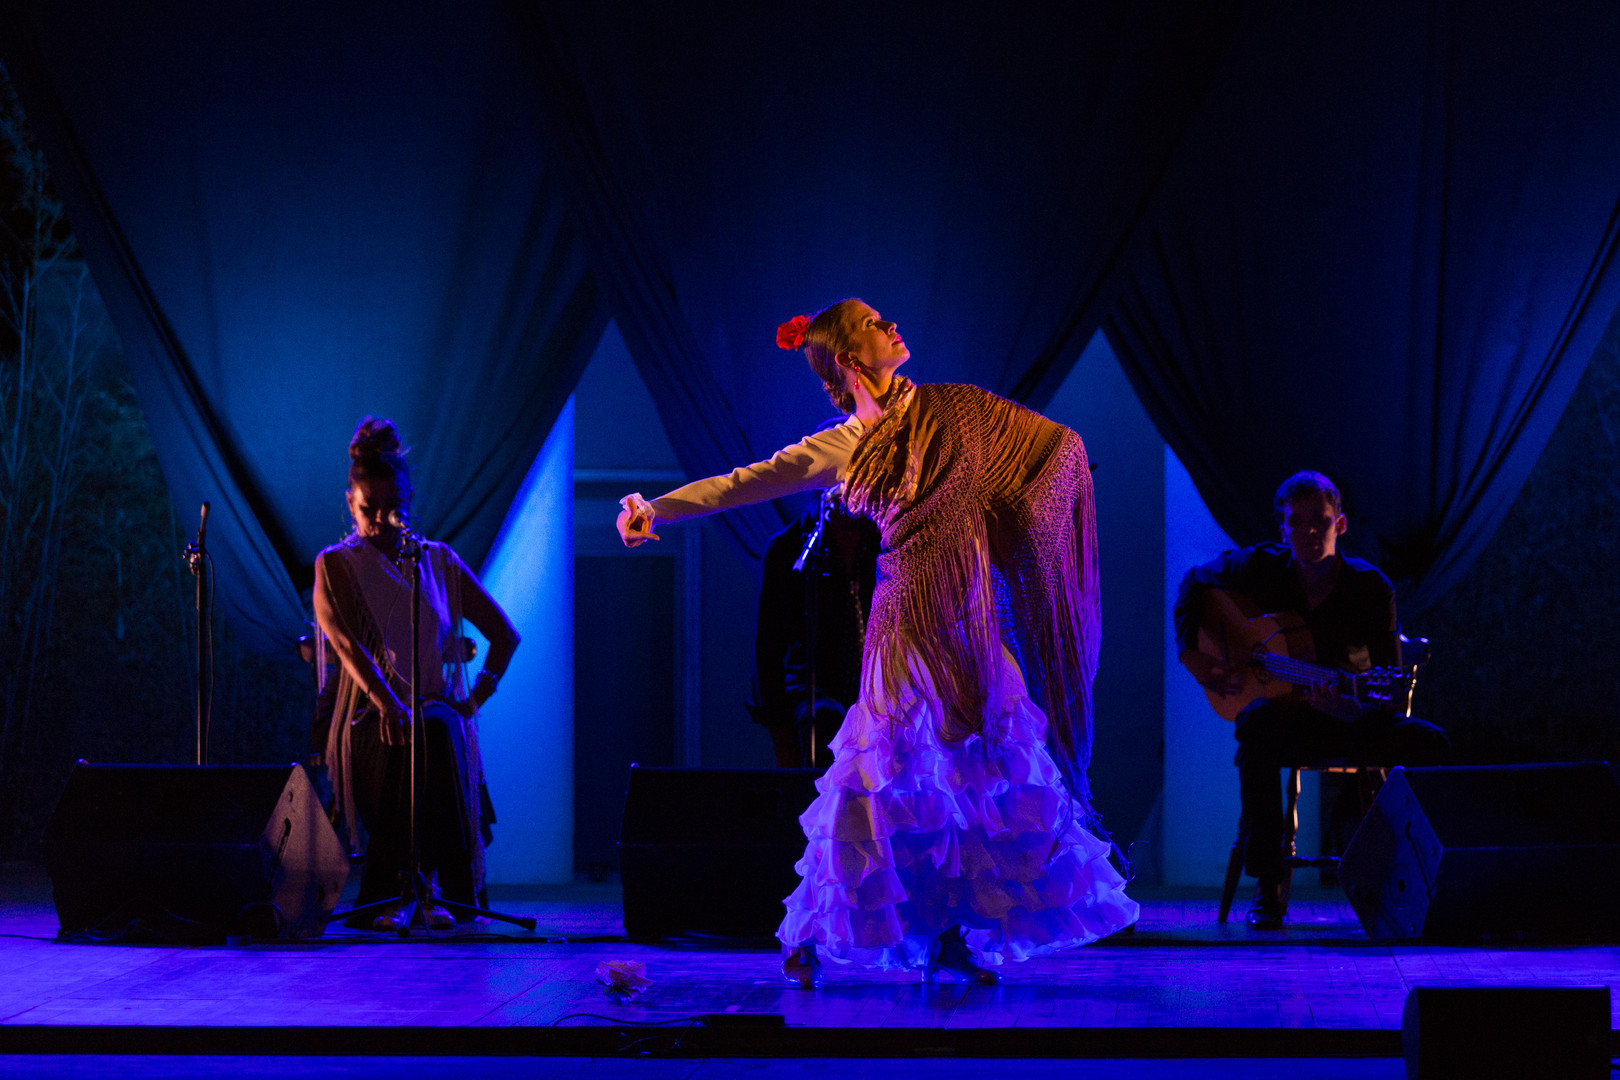 photography photographie concert  sing performer dancer performance dance flamenco